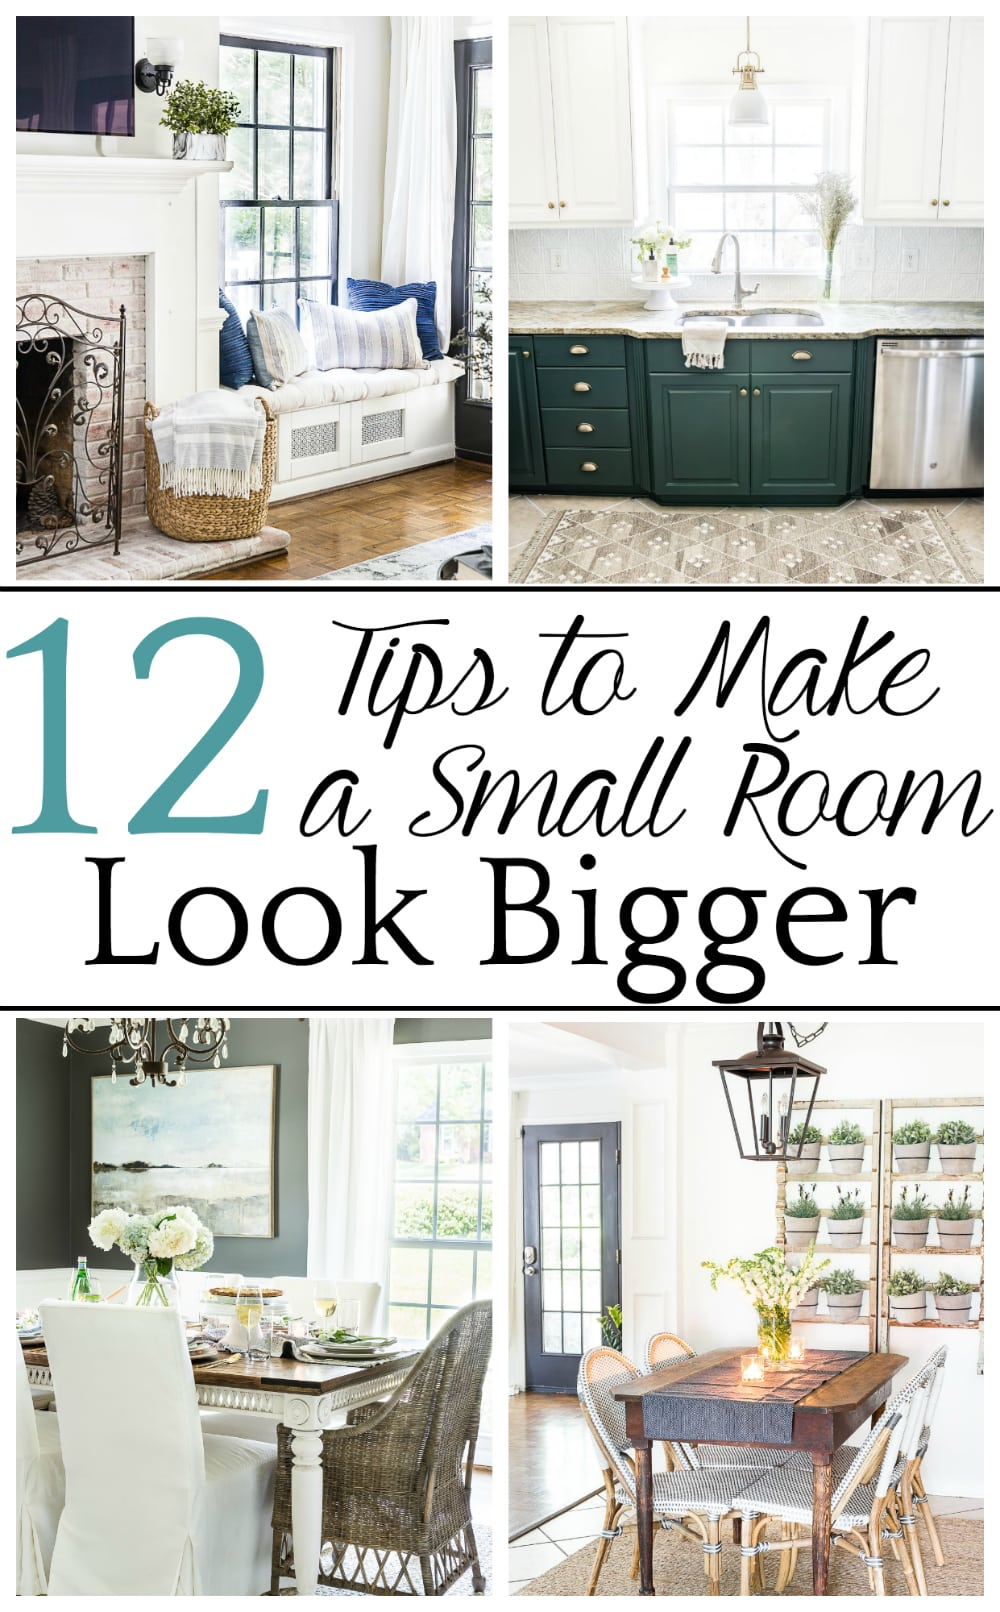 How to make a small room look bigger bless 39 er house - How to make a small space look bigger ...